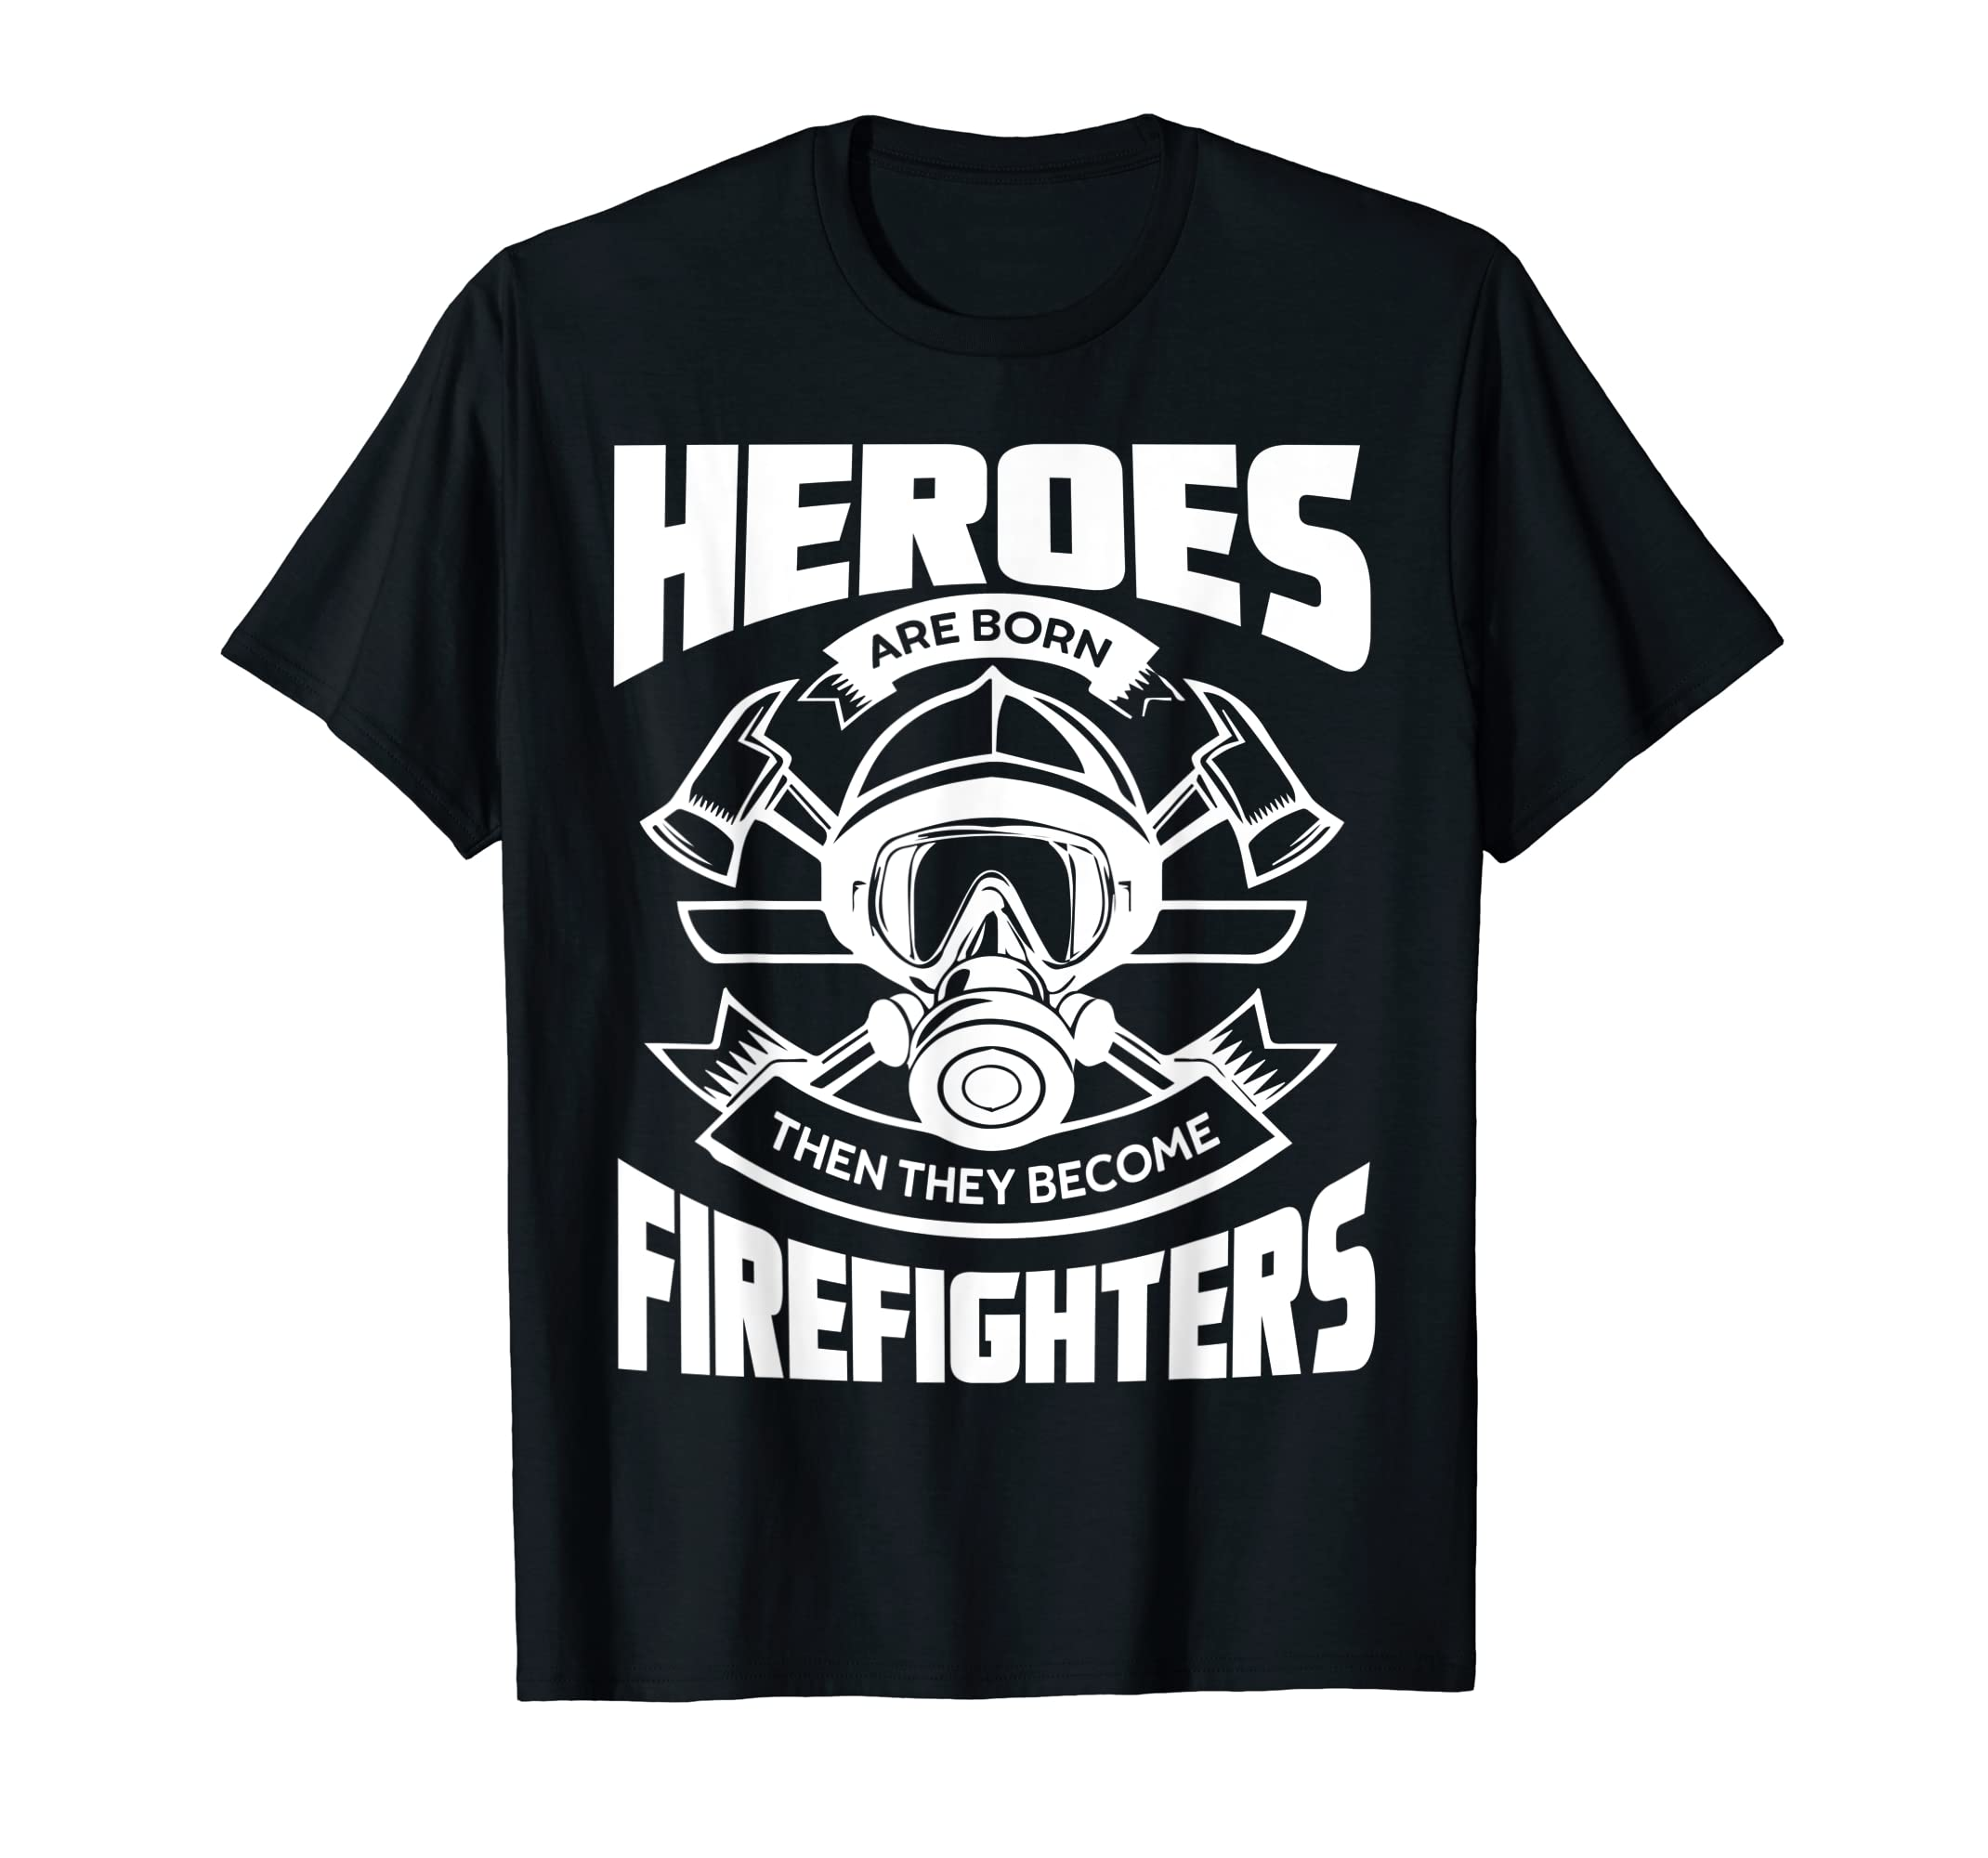 e23c4a8c Amazon.com: Firefighter Shirt - Firefighter Tee Shirt: Clothing